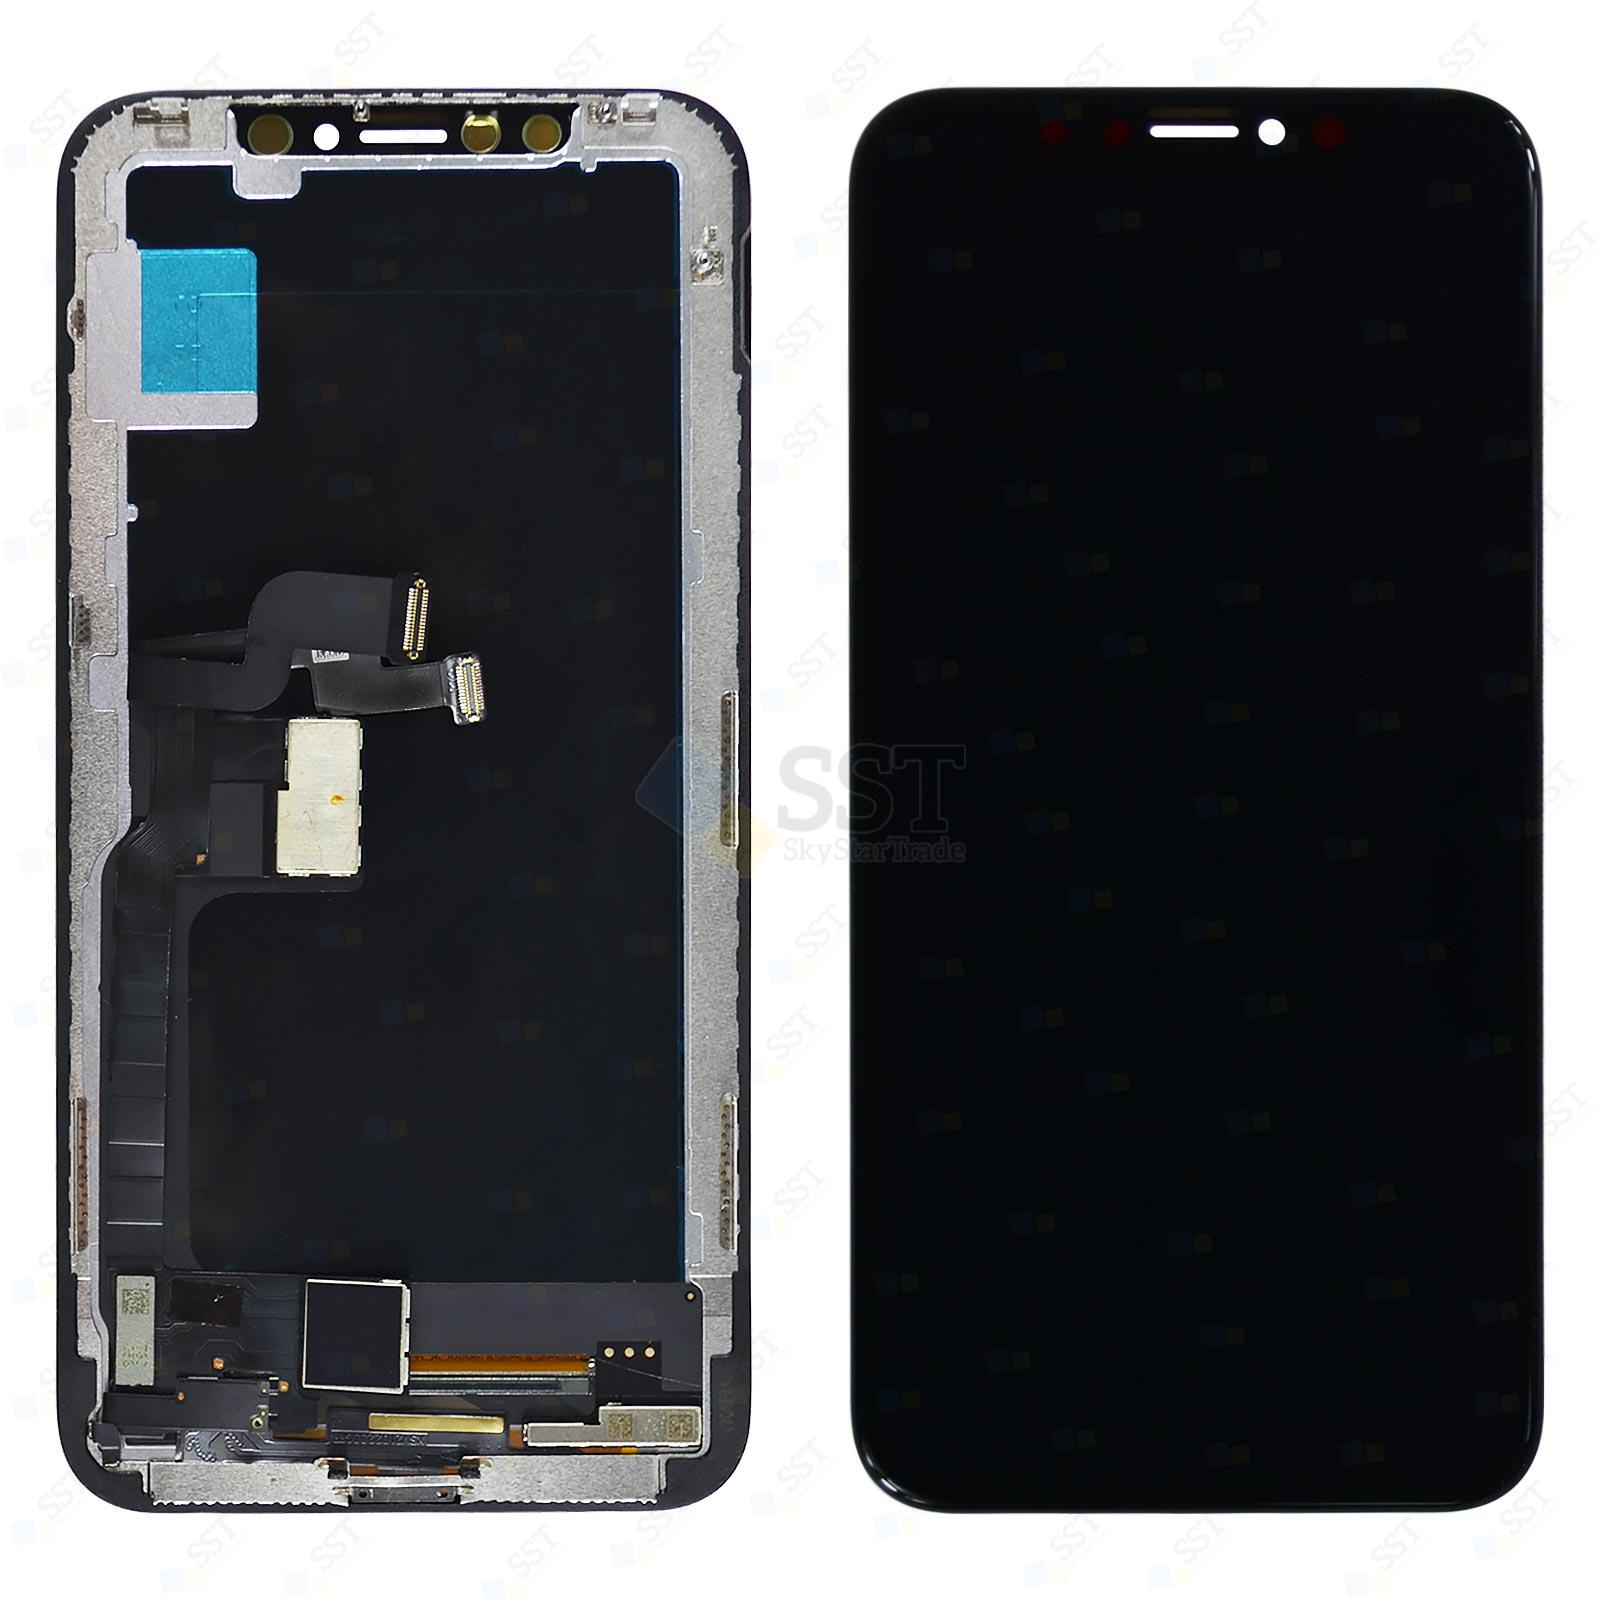 iPhone X 10 A1865 A1901 A1902 LCD Screen Digitizer, LCD Type, Black, Generic